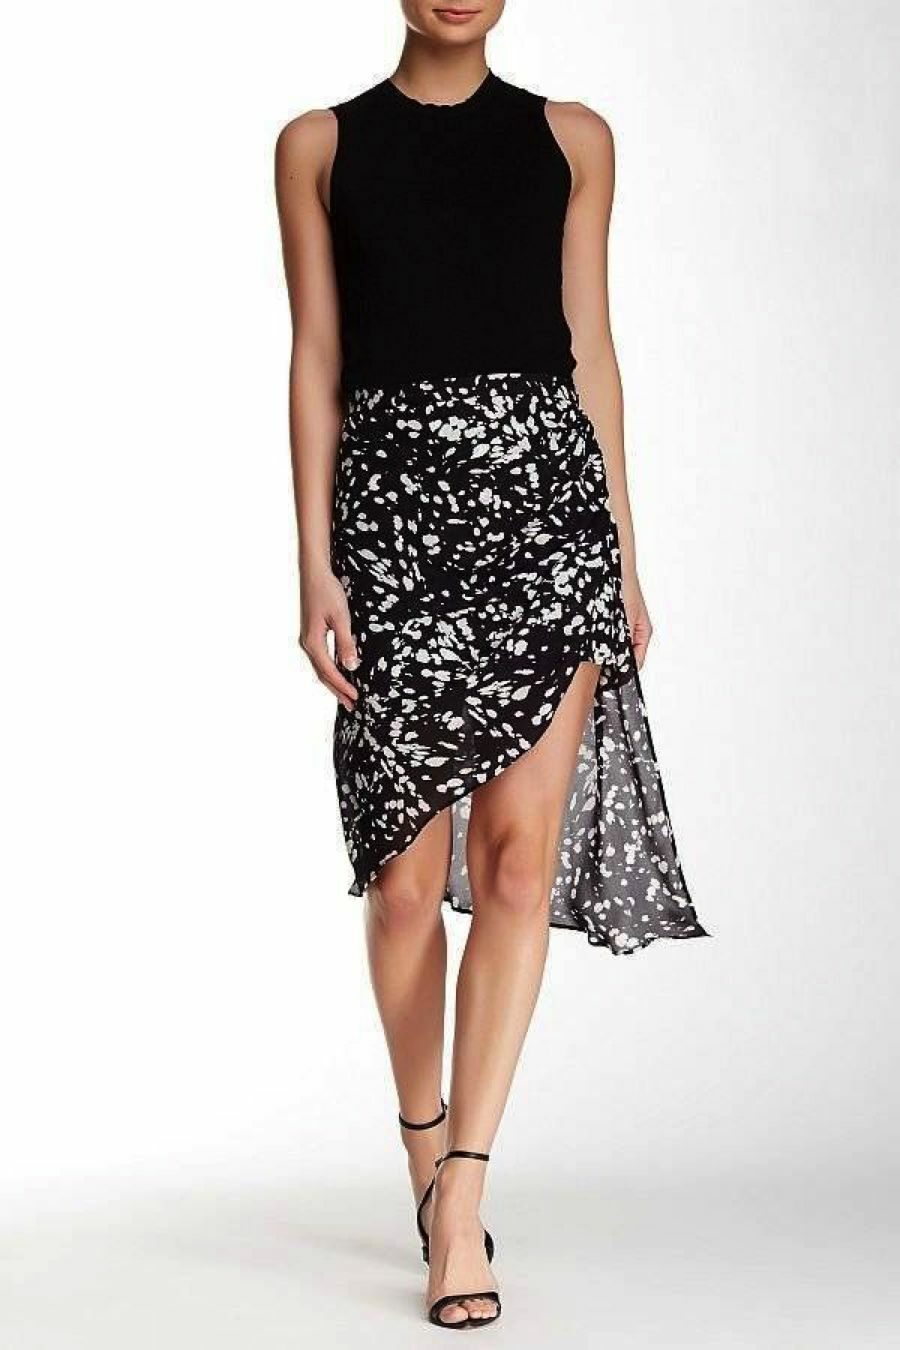 NWT Haute Hippie  Printed Silk Asymmetrical Skirt sz 2